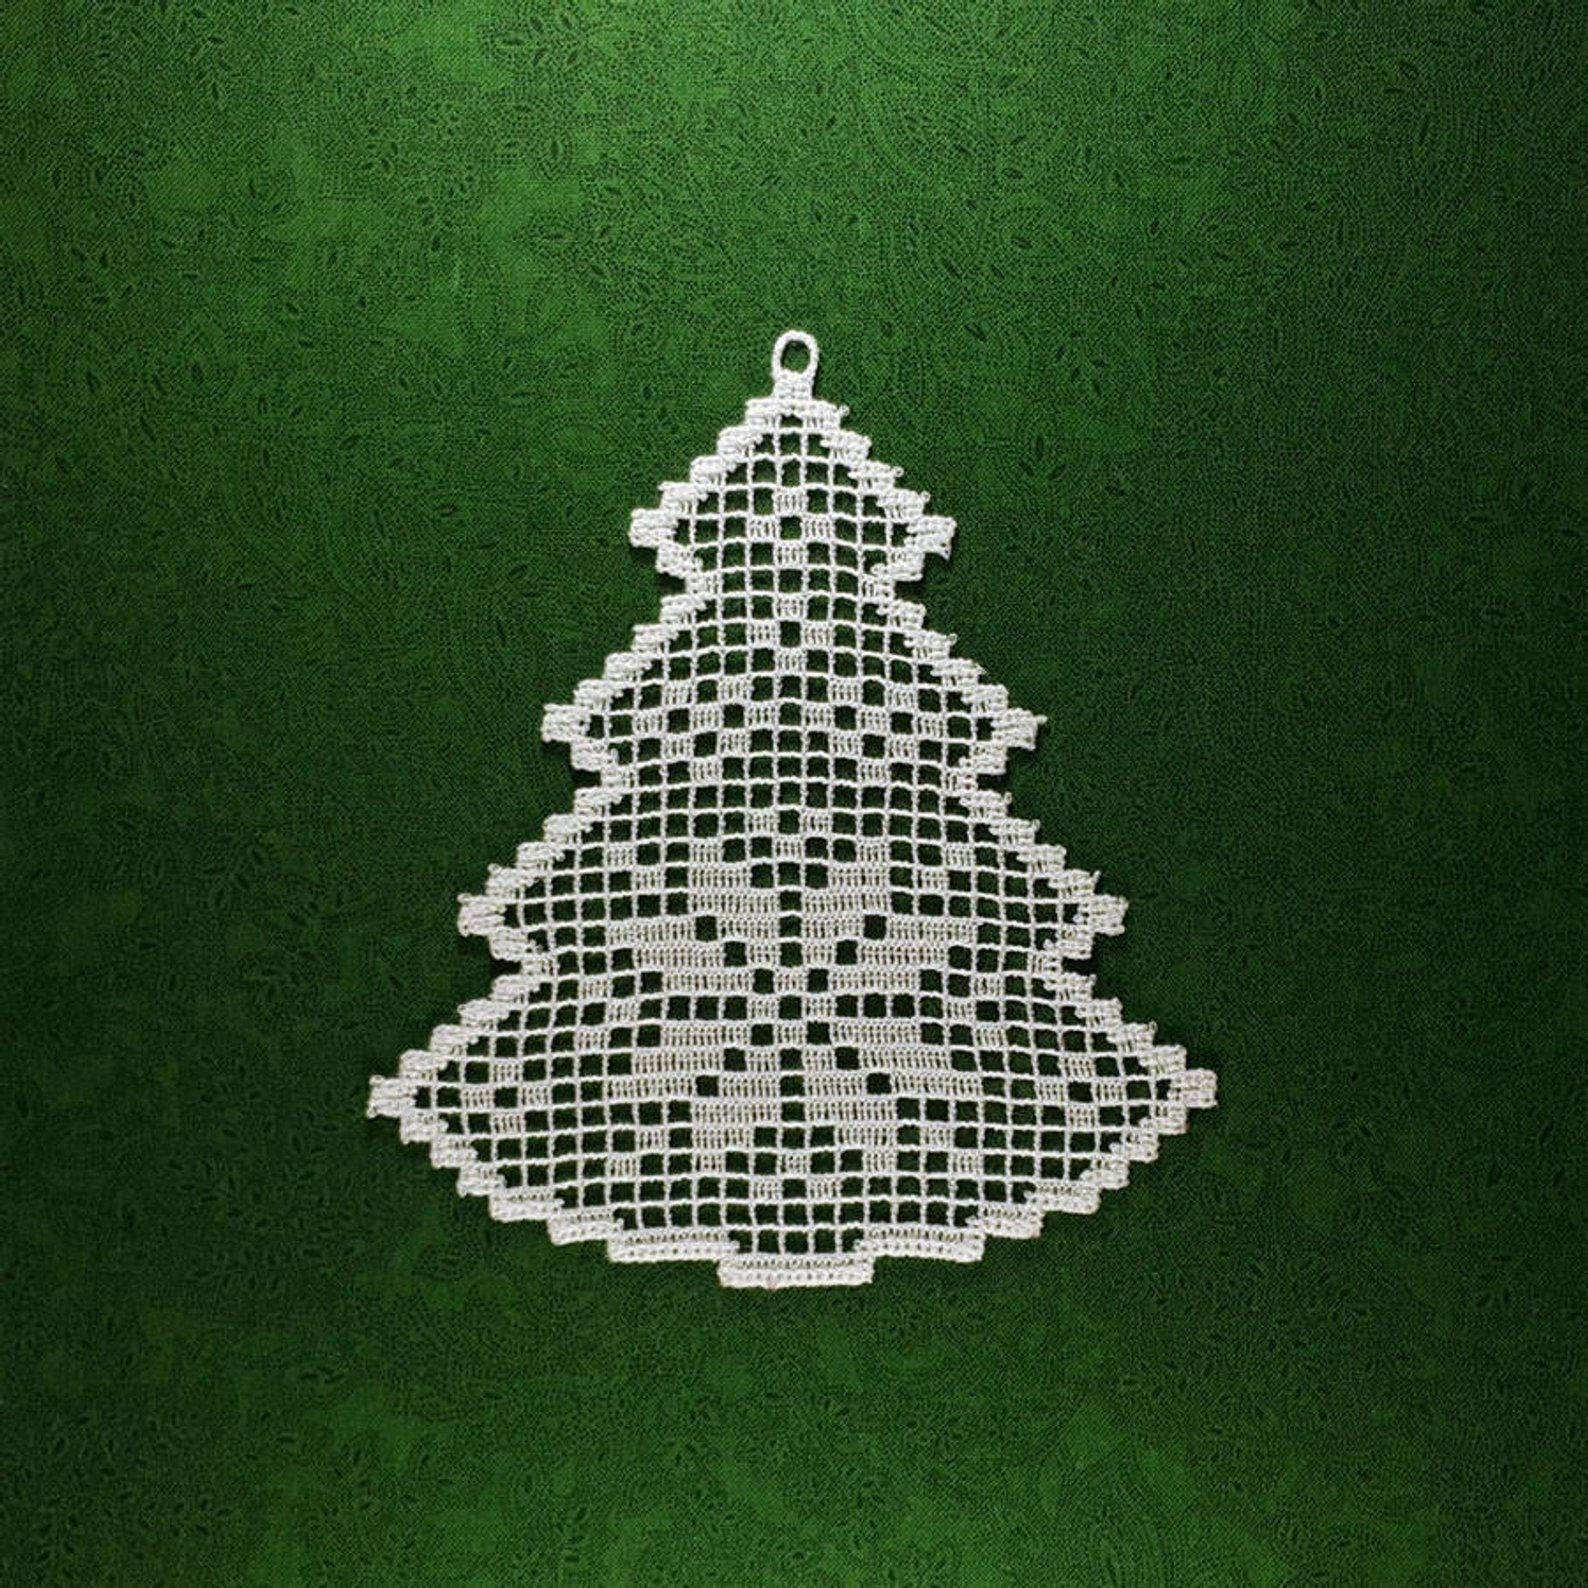 Christmas Tree Machine Embroidery Design Freestanding Lace In Etsy Crochet Christmas Trees Christmas Tree Embroidery Design Crochet Christmas Trees Ornaments